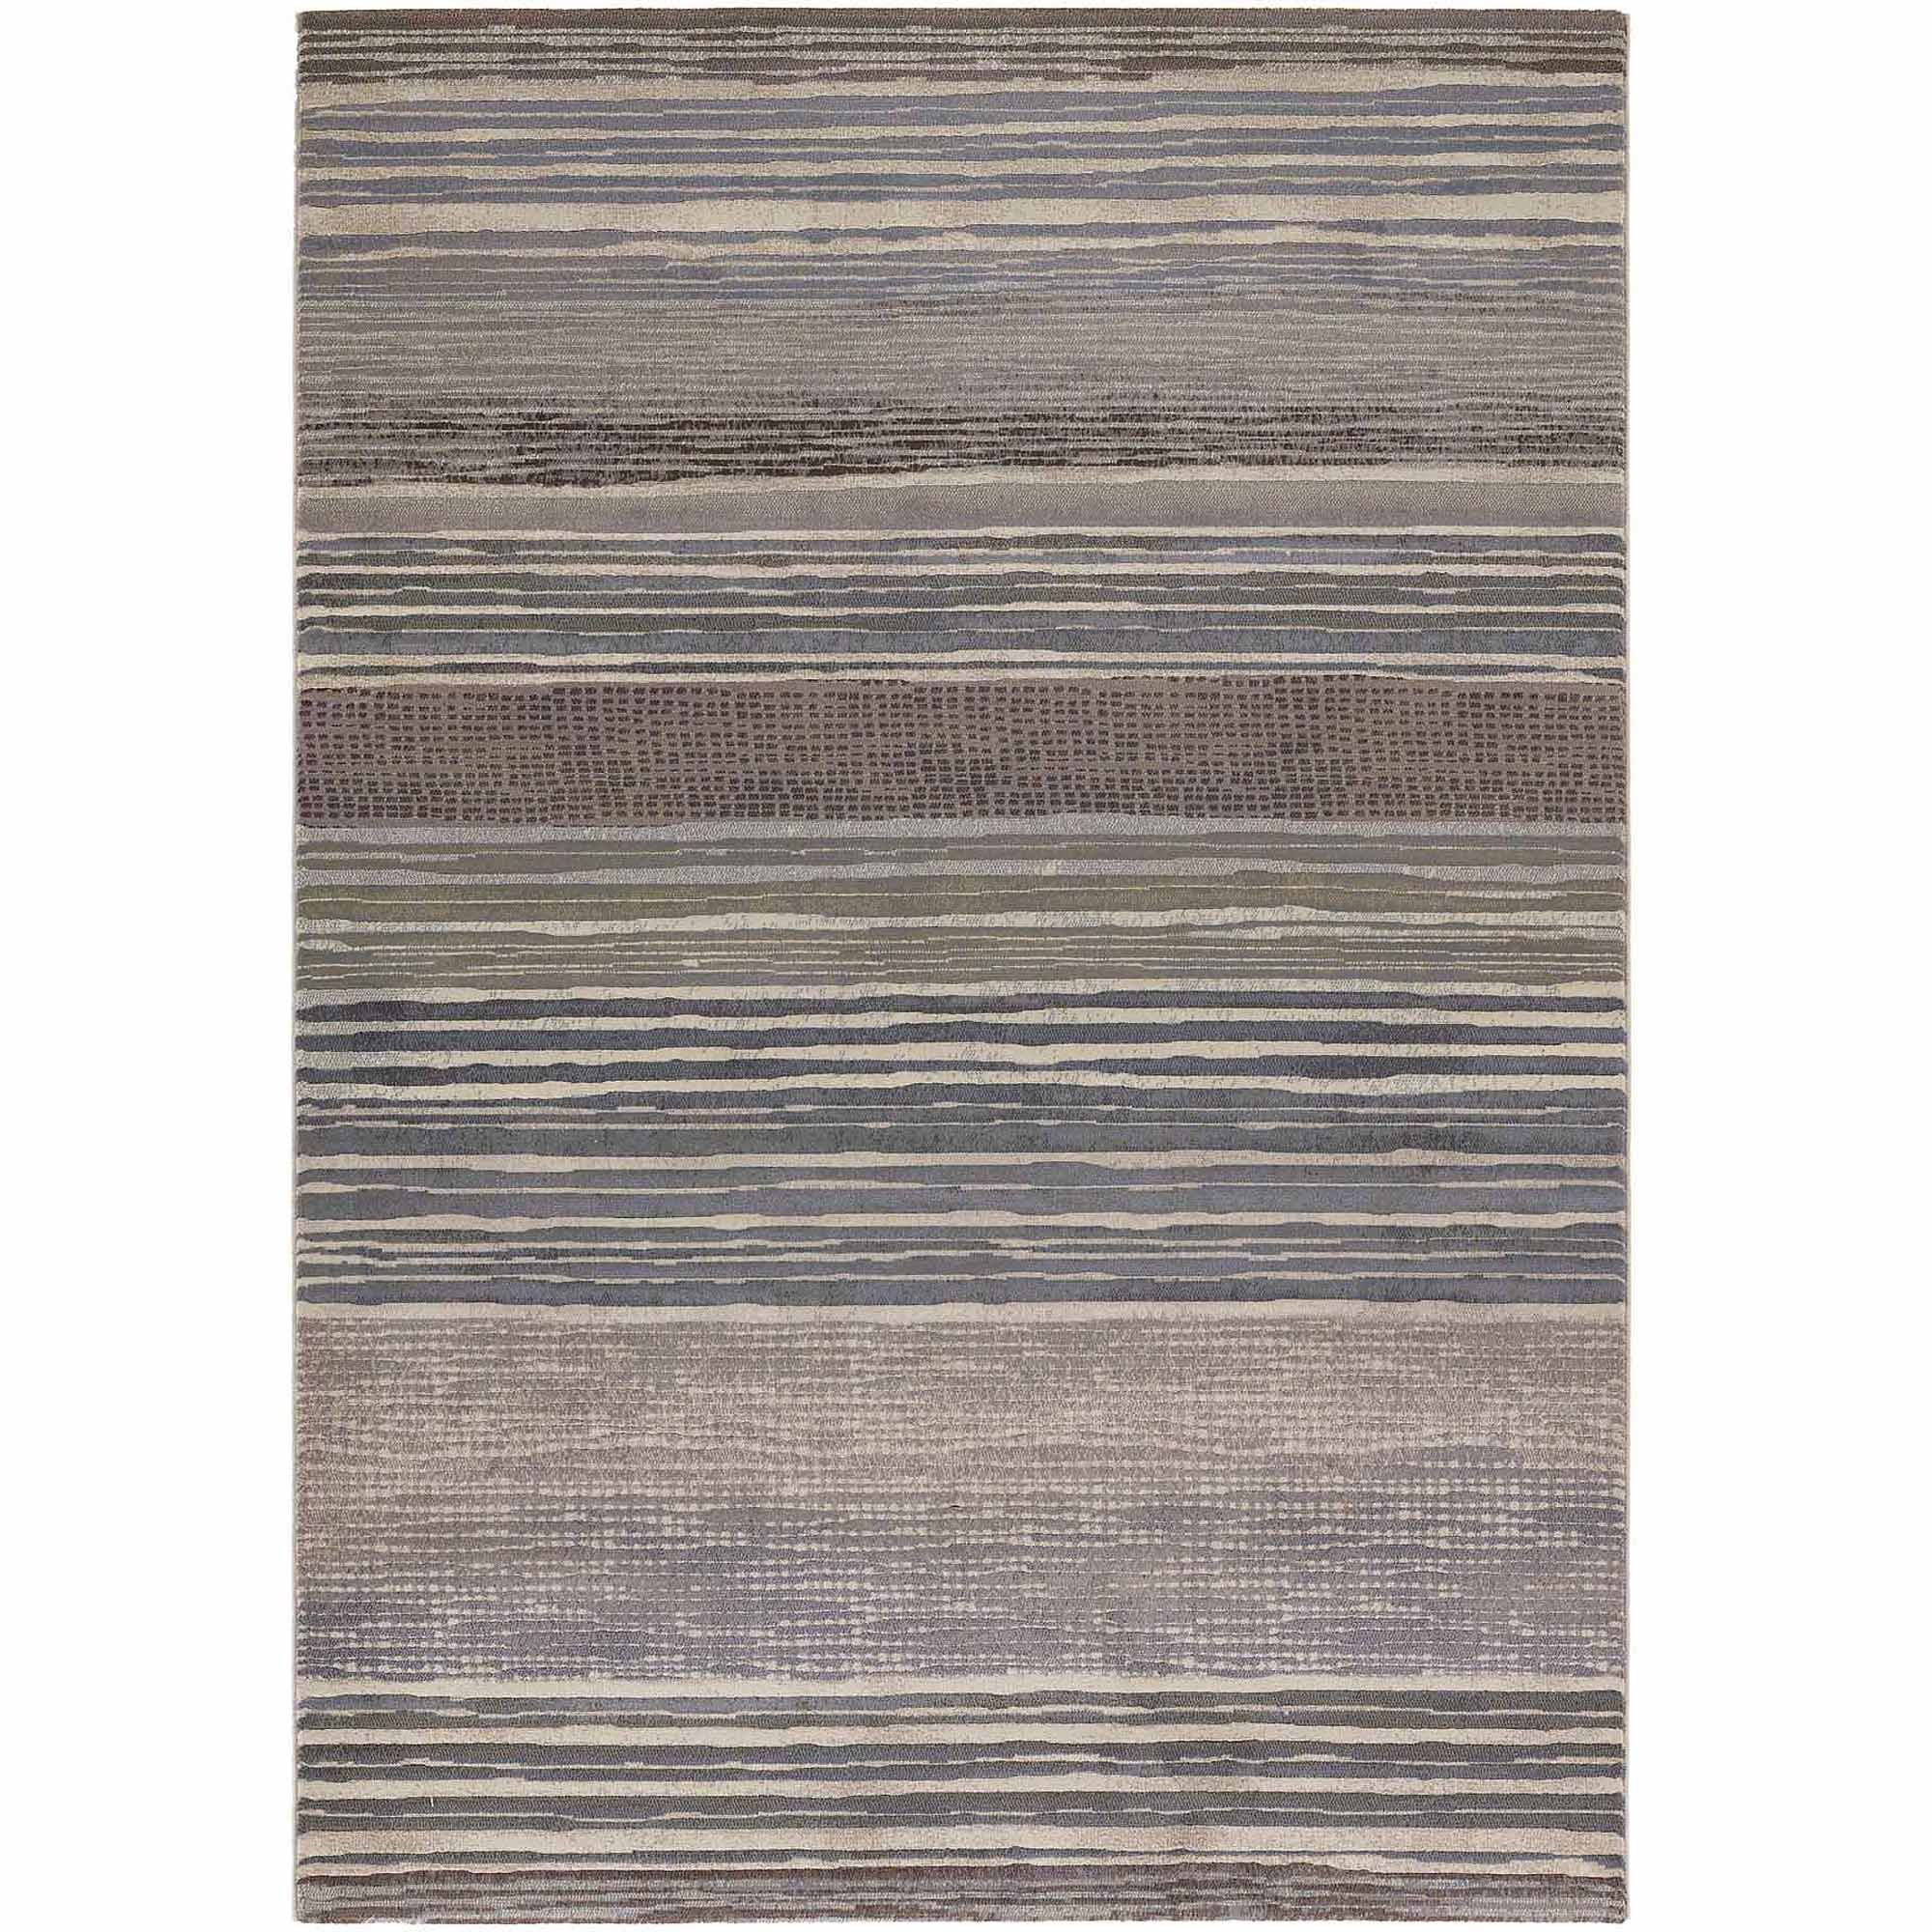 Couristan Easton Vibrato Rug, Tan/Teal